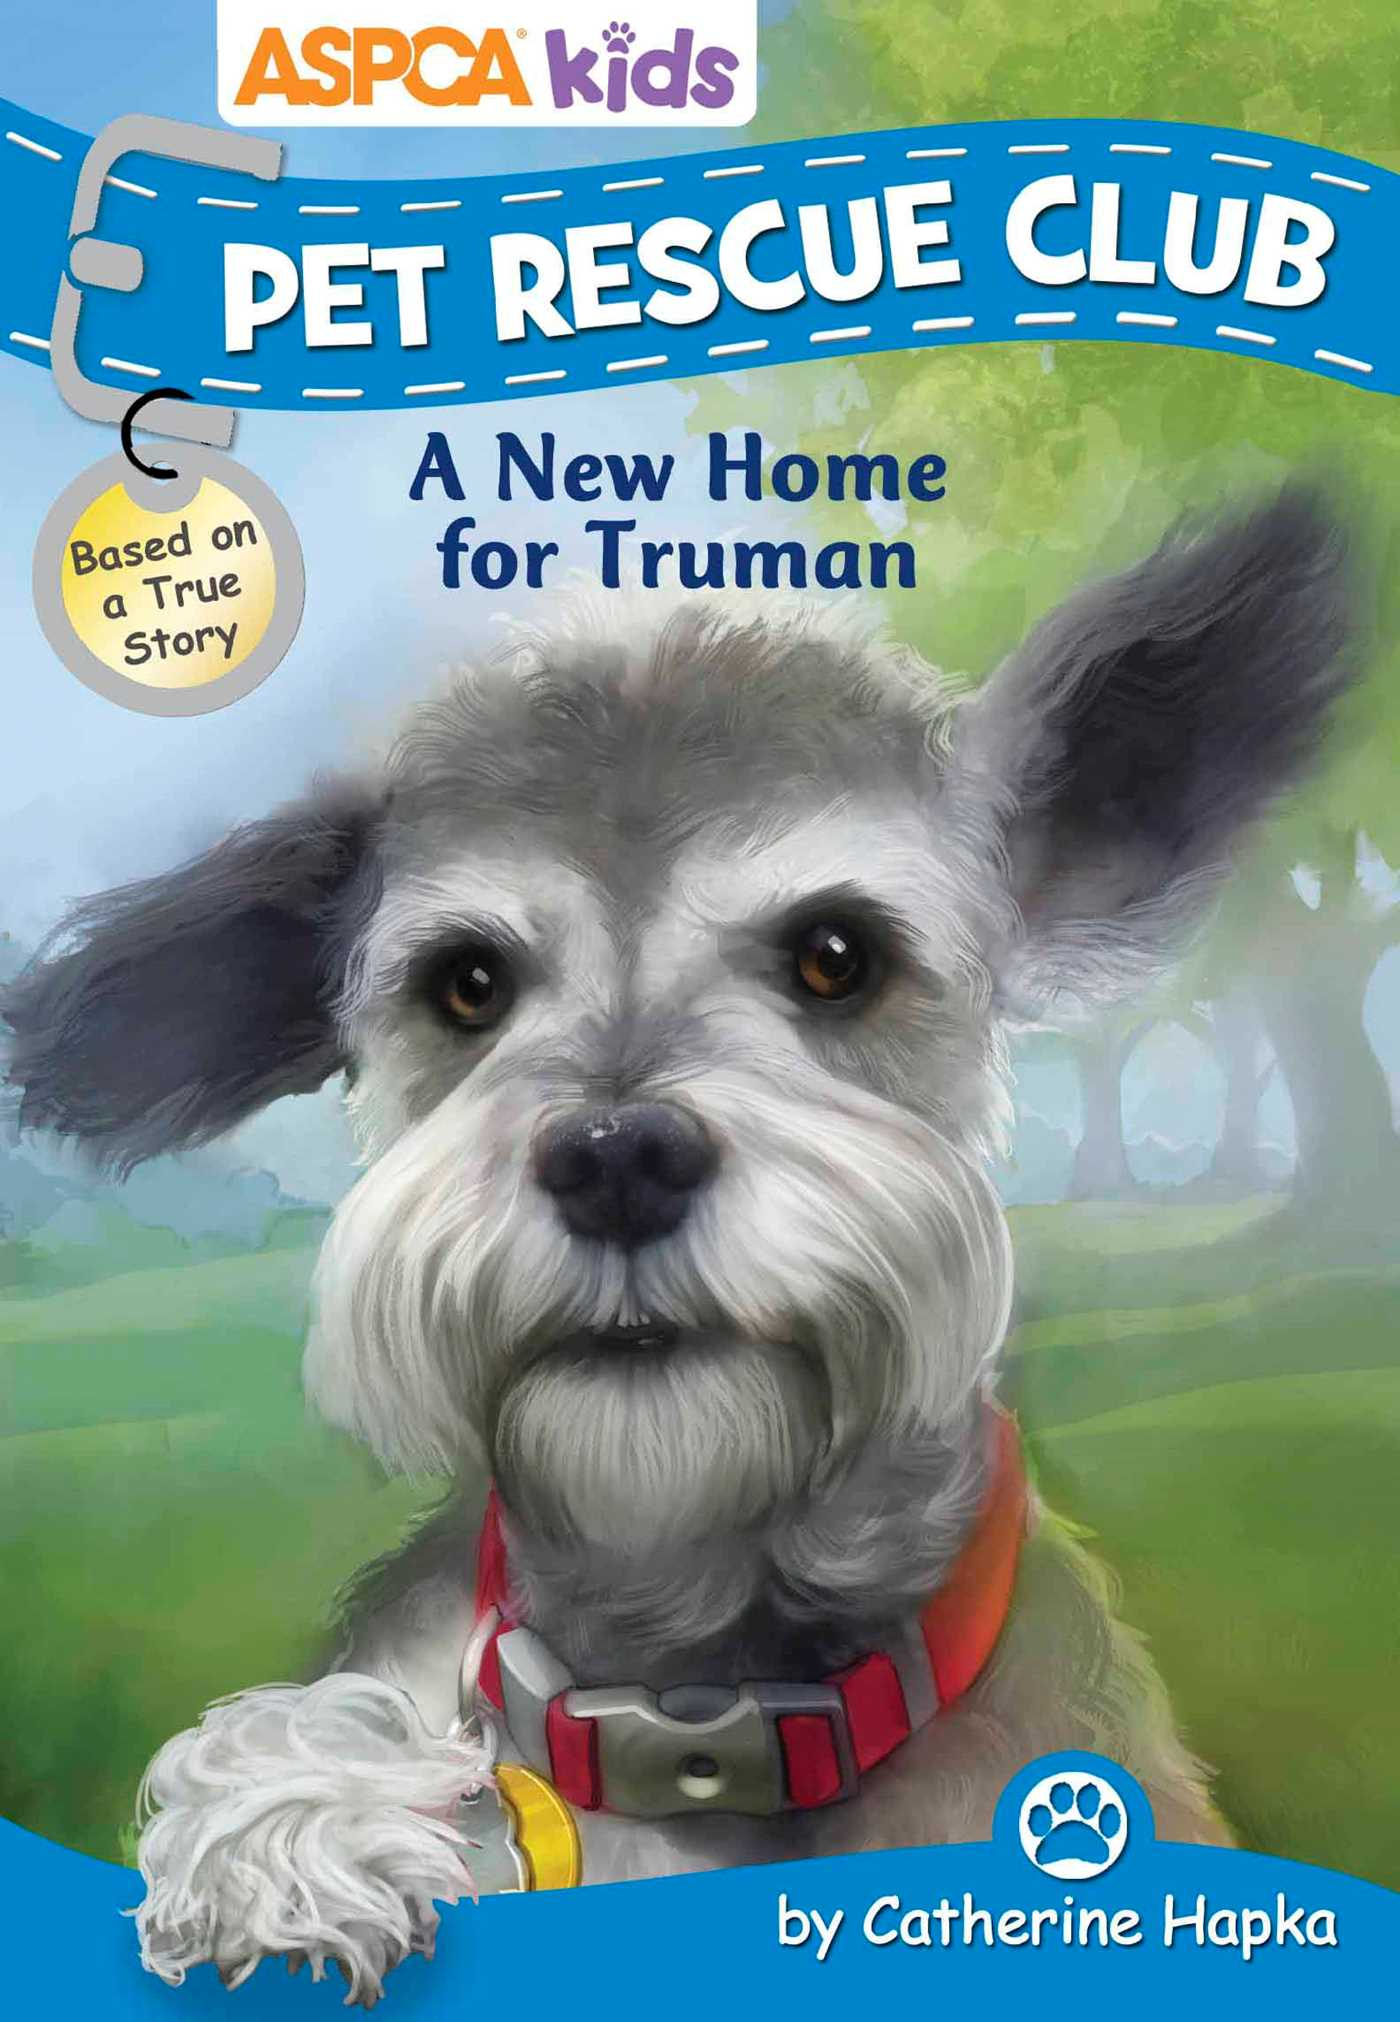 Aspca kids pet rescue club a new home for truman 9780794433123 hr